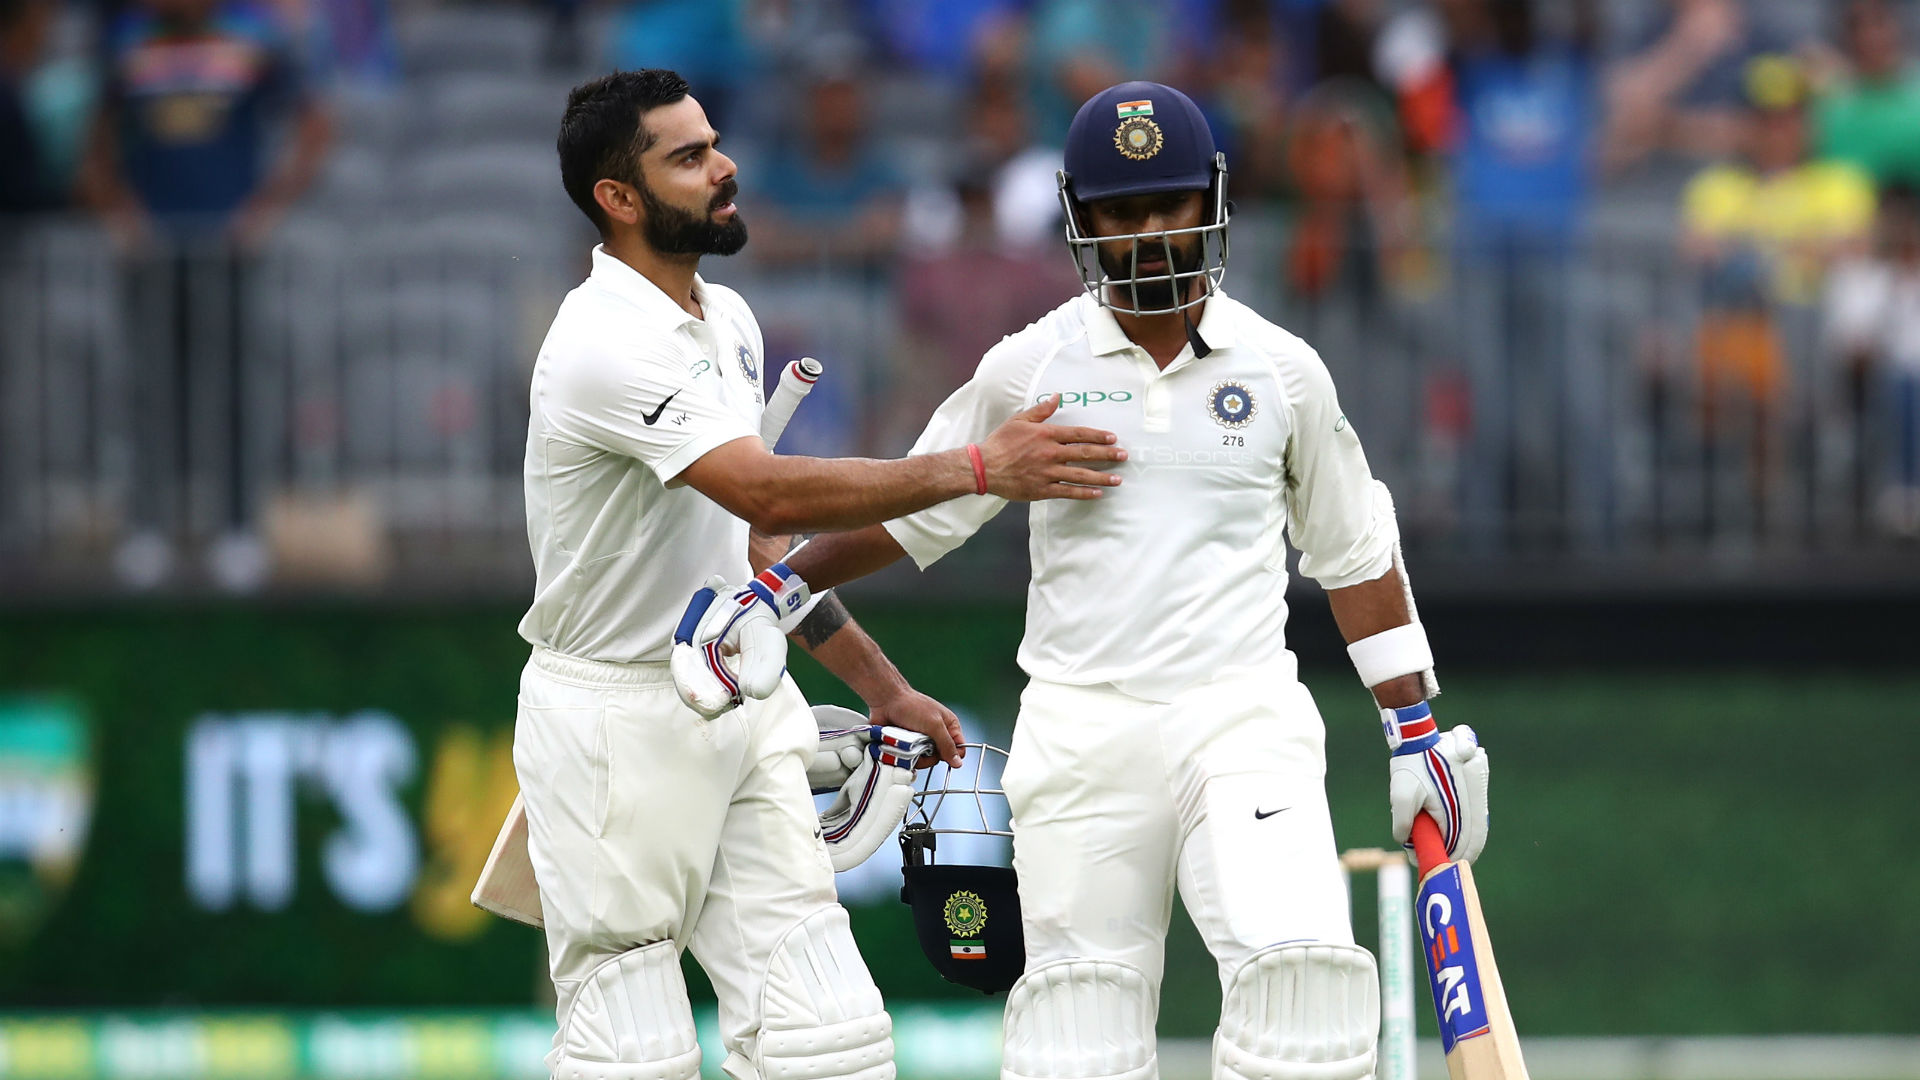 Kohli and Rahane combine to thwart Australia in Perth